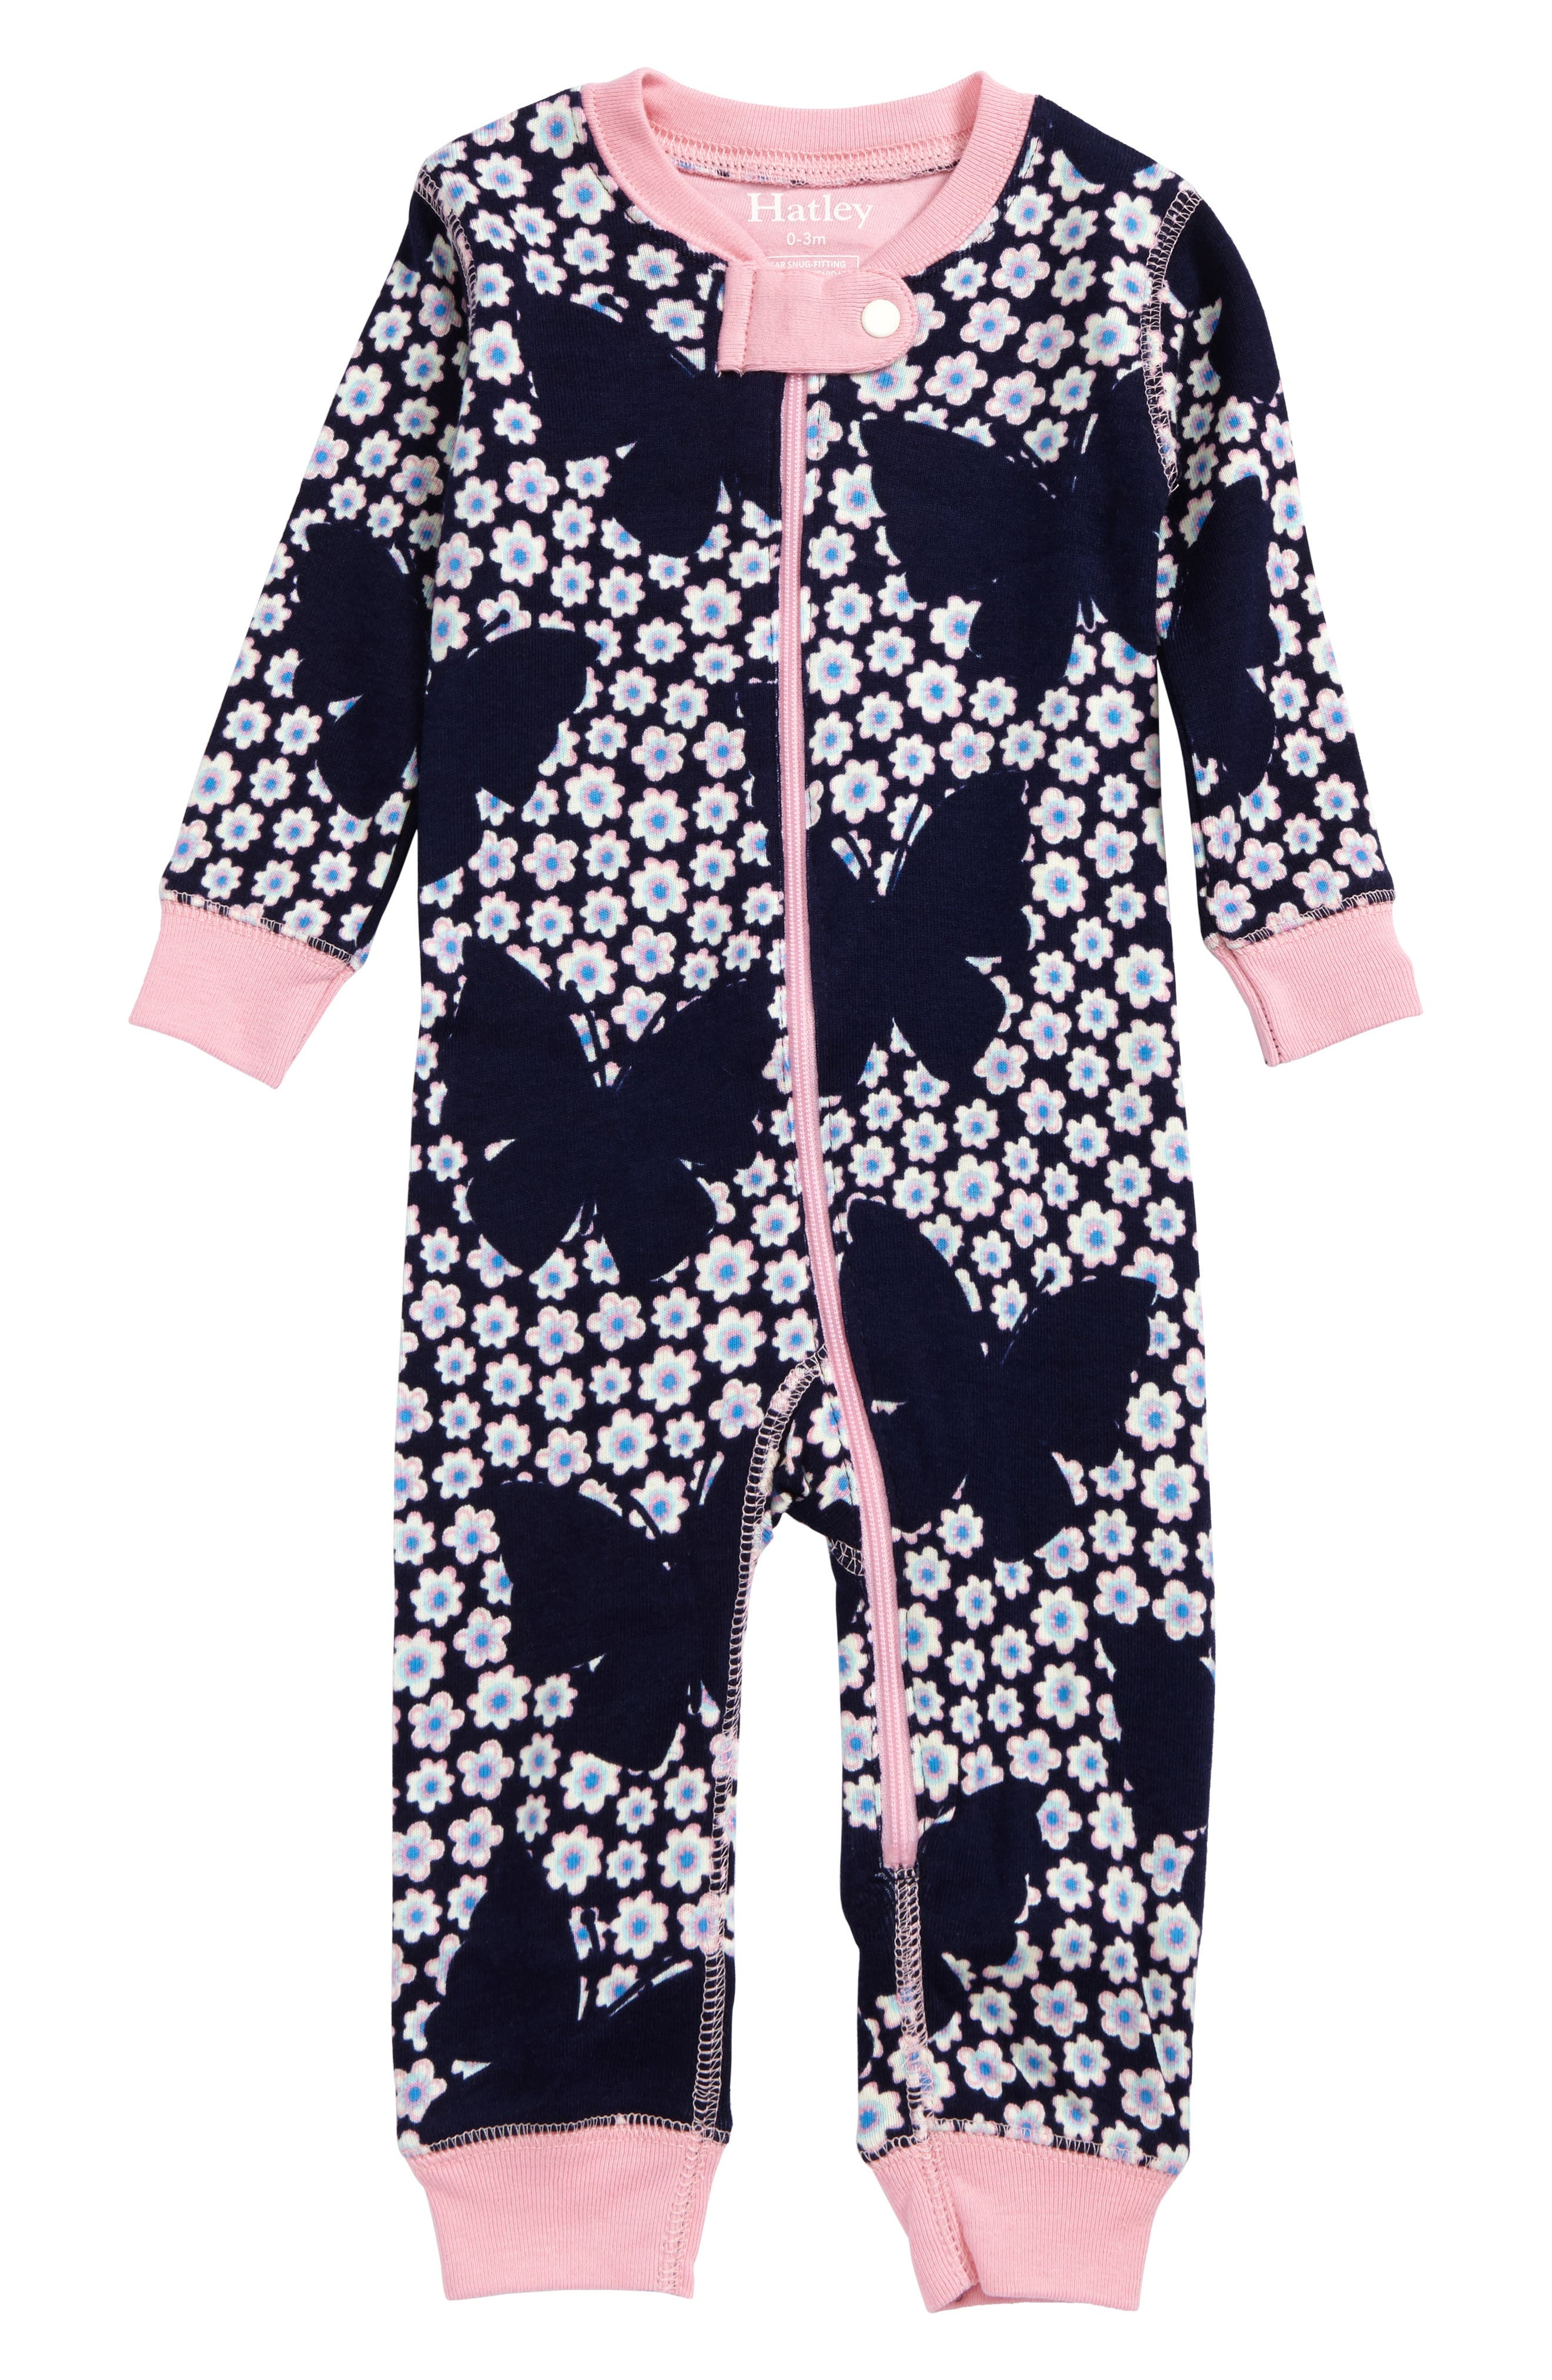 Hatley Butterflies & Buds Waffle Knit Organic Cotton Fitted One-Piece Pajamas (Baby Girls)